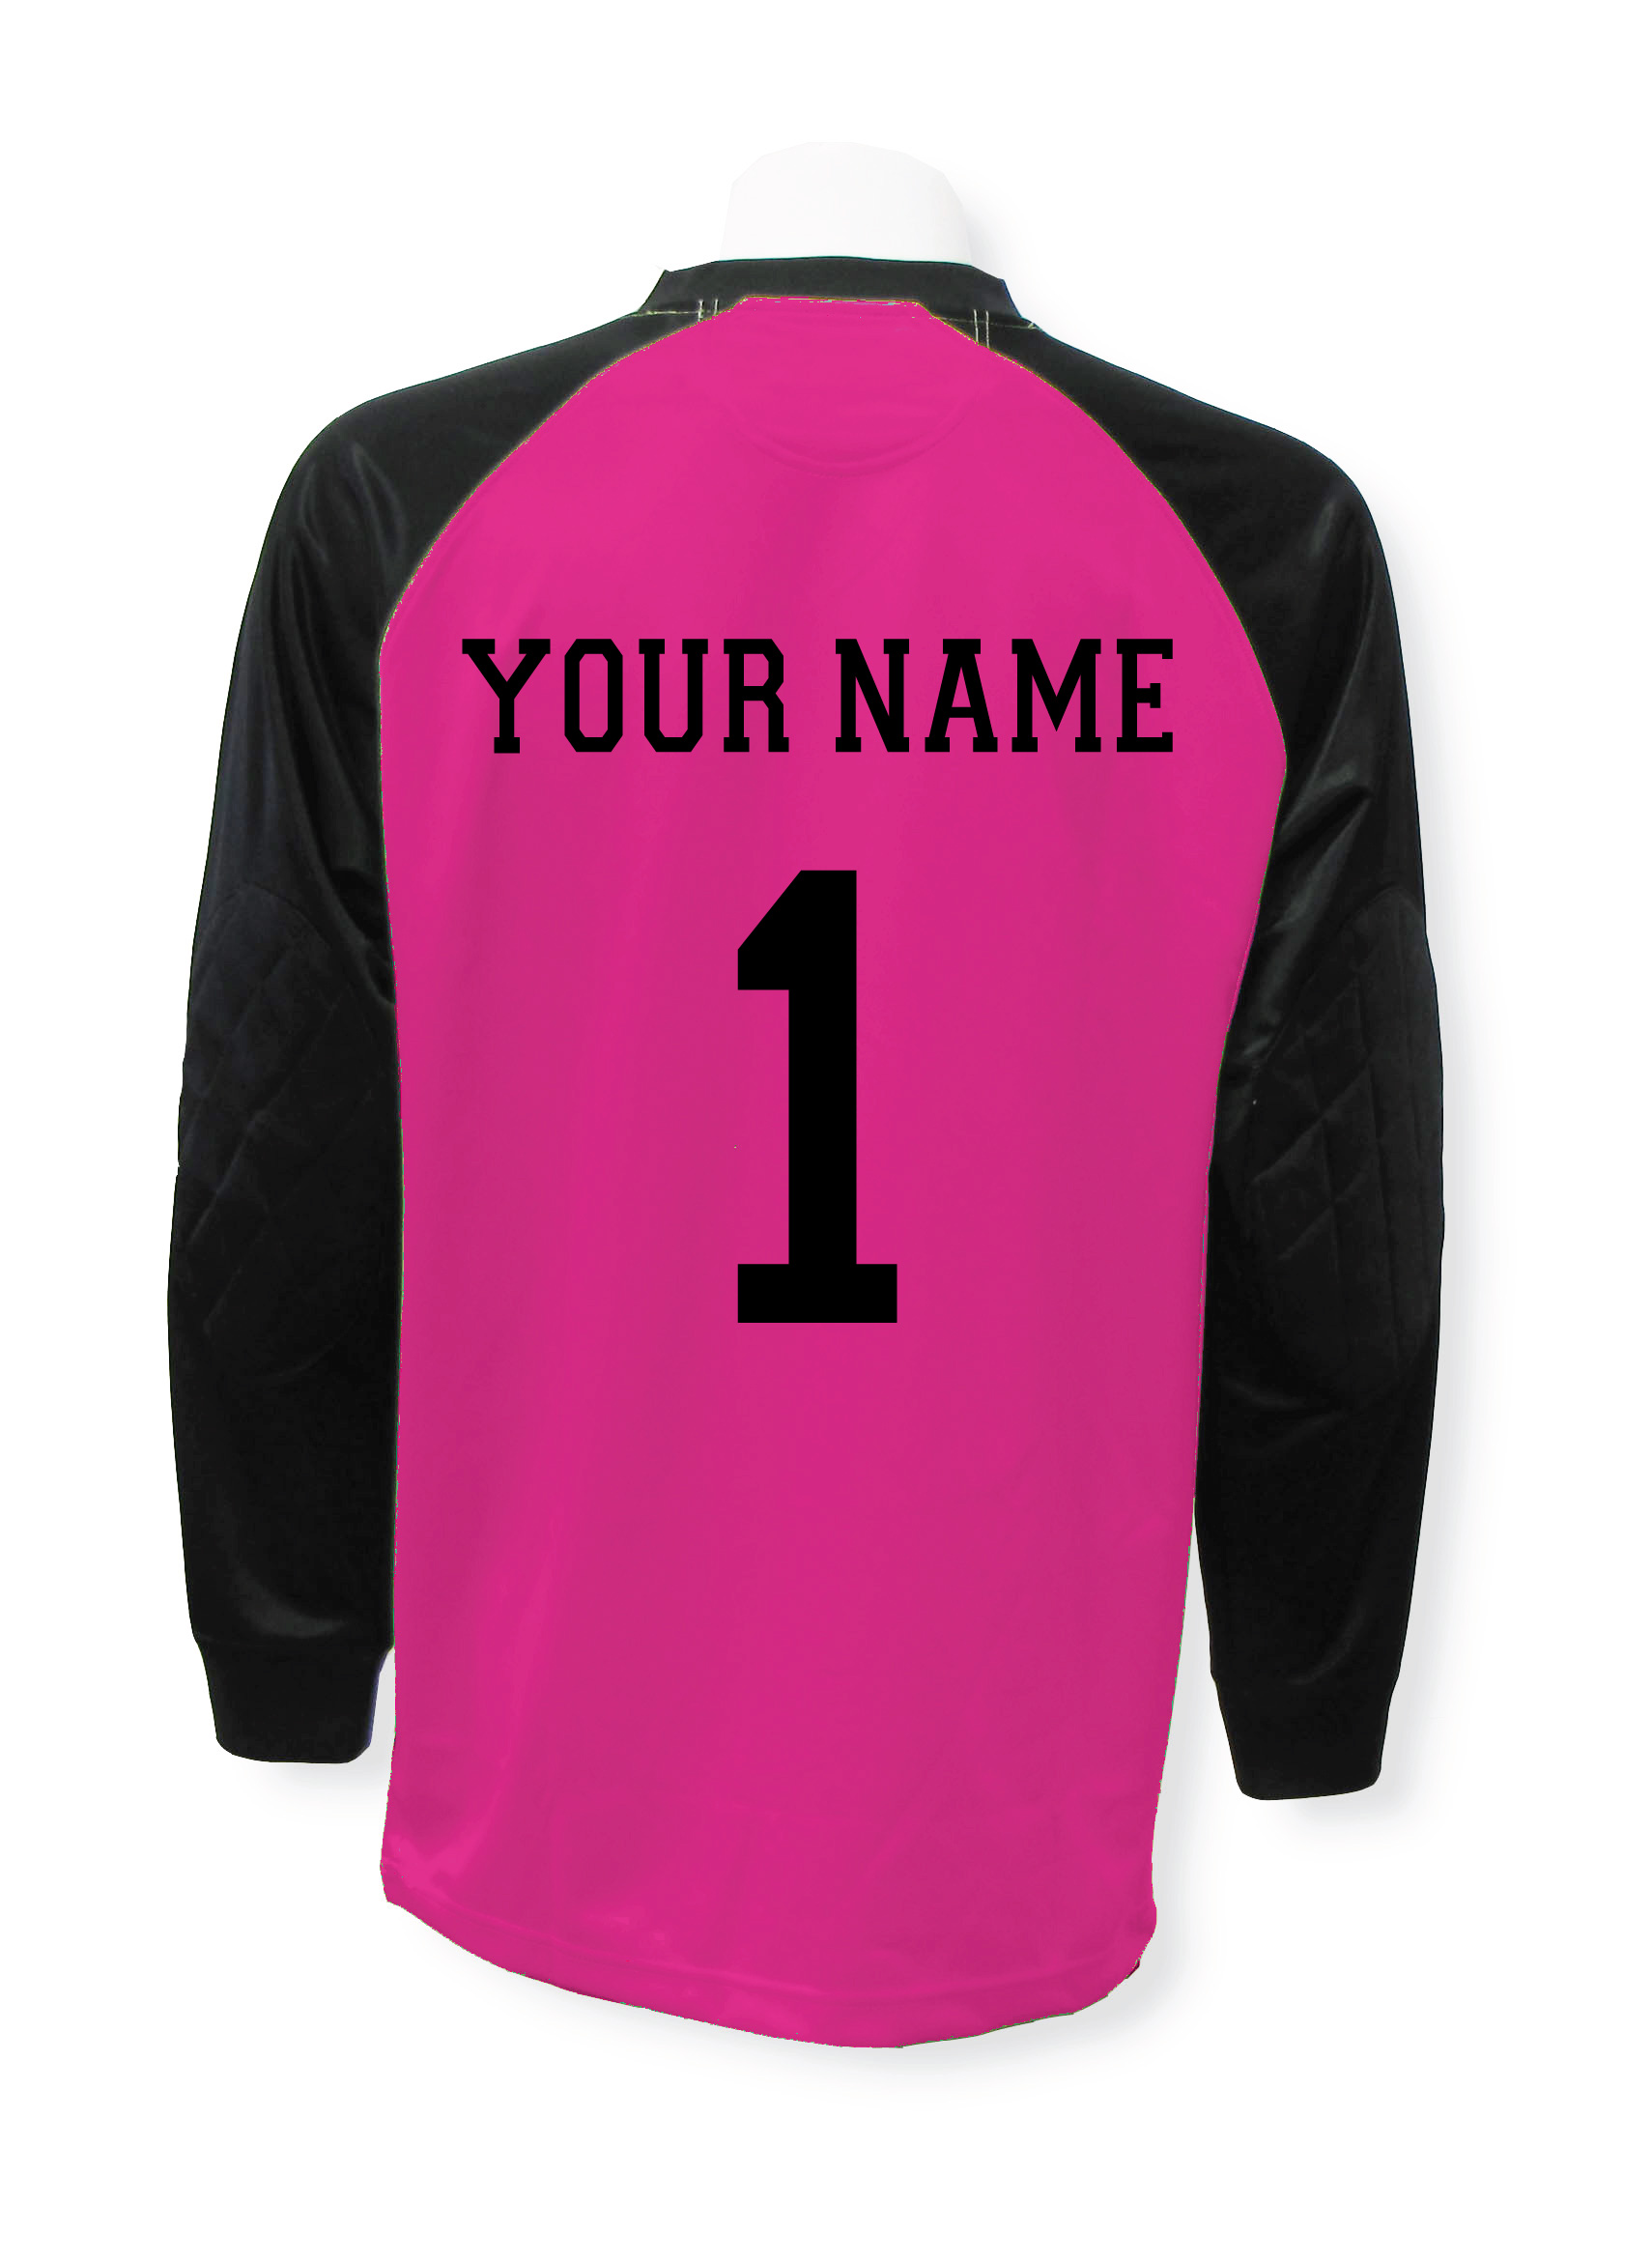 Soccer goalie jersey customized with your name and number by Code Four Athletics